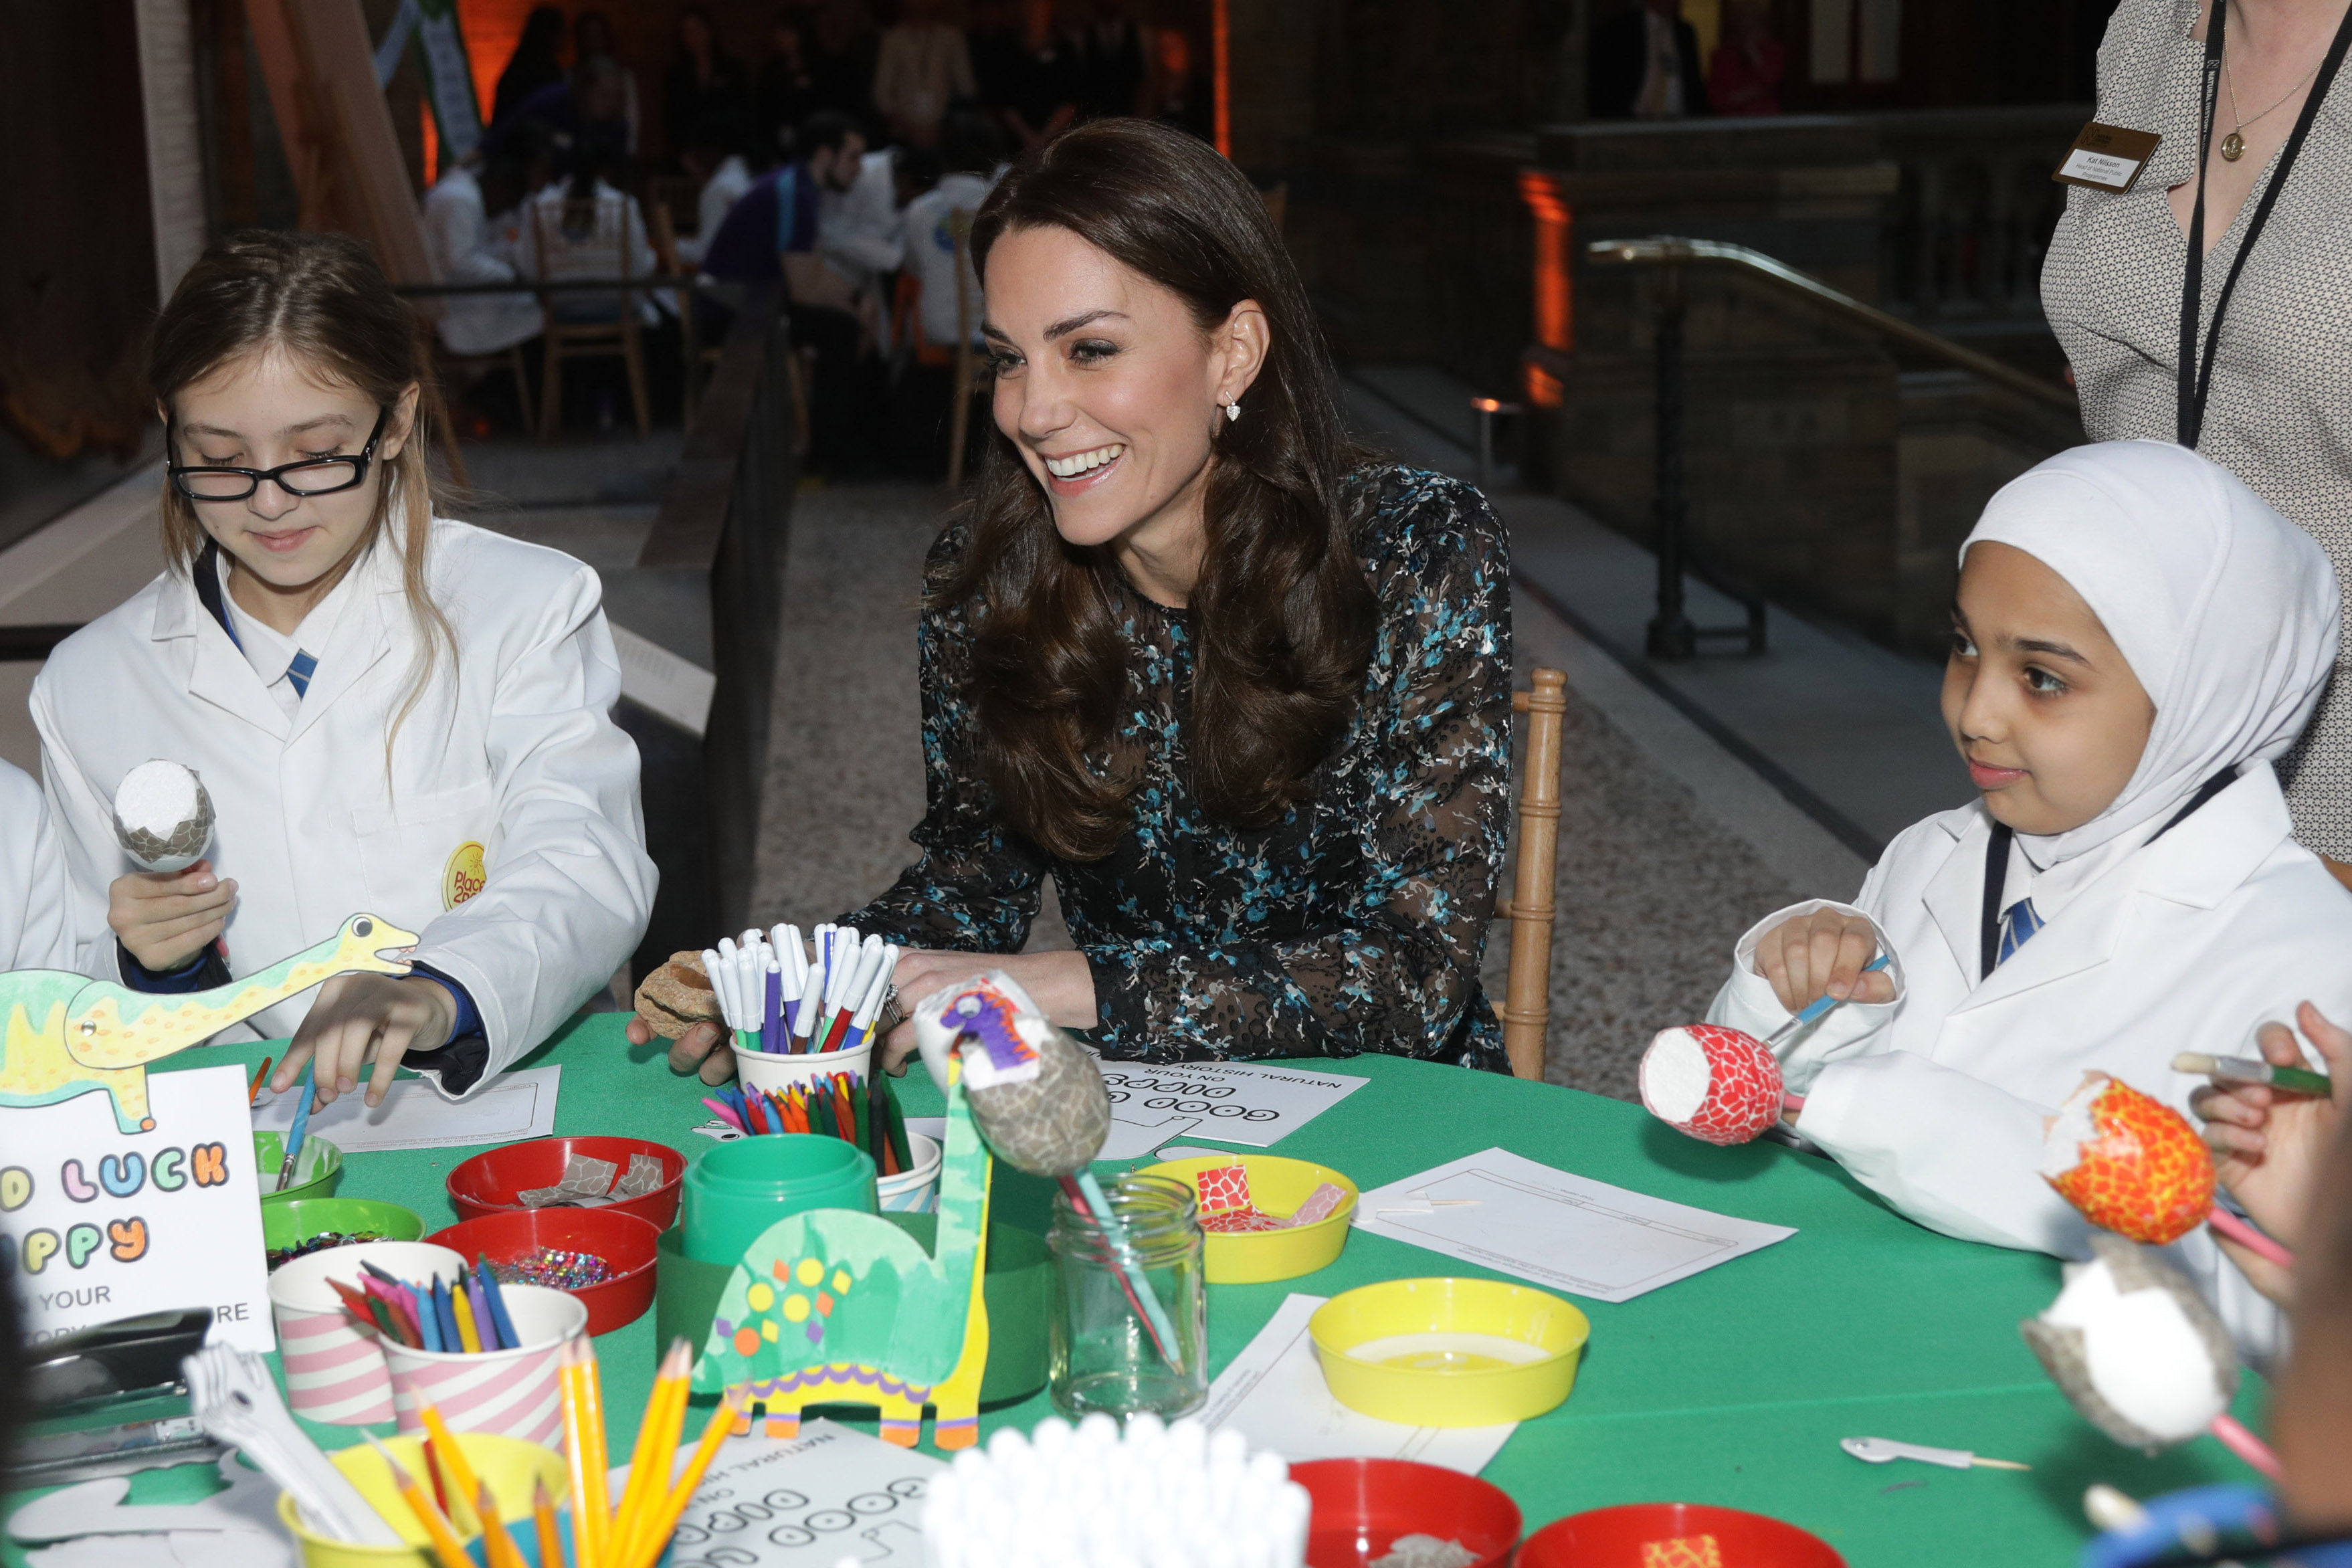 Even Kate Middleton Loves Adult Coloring Books!